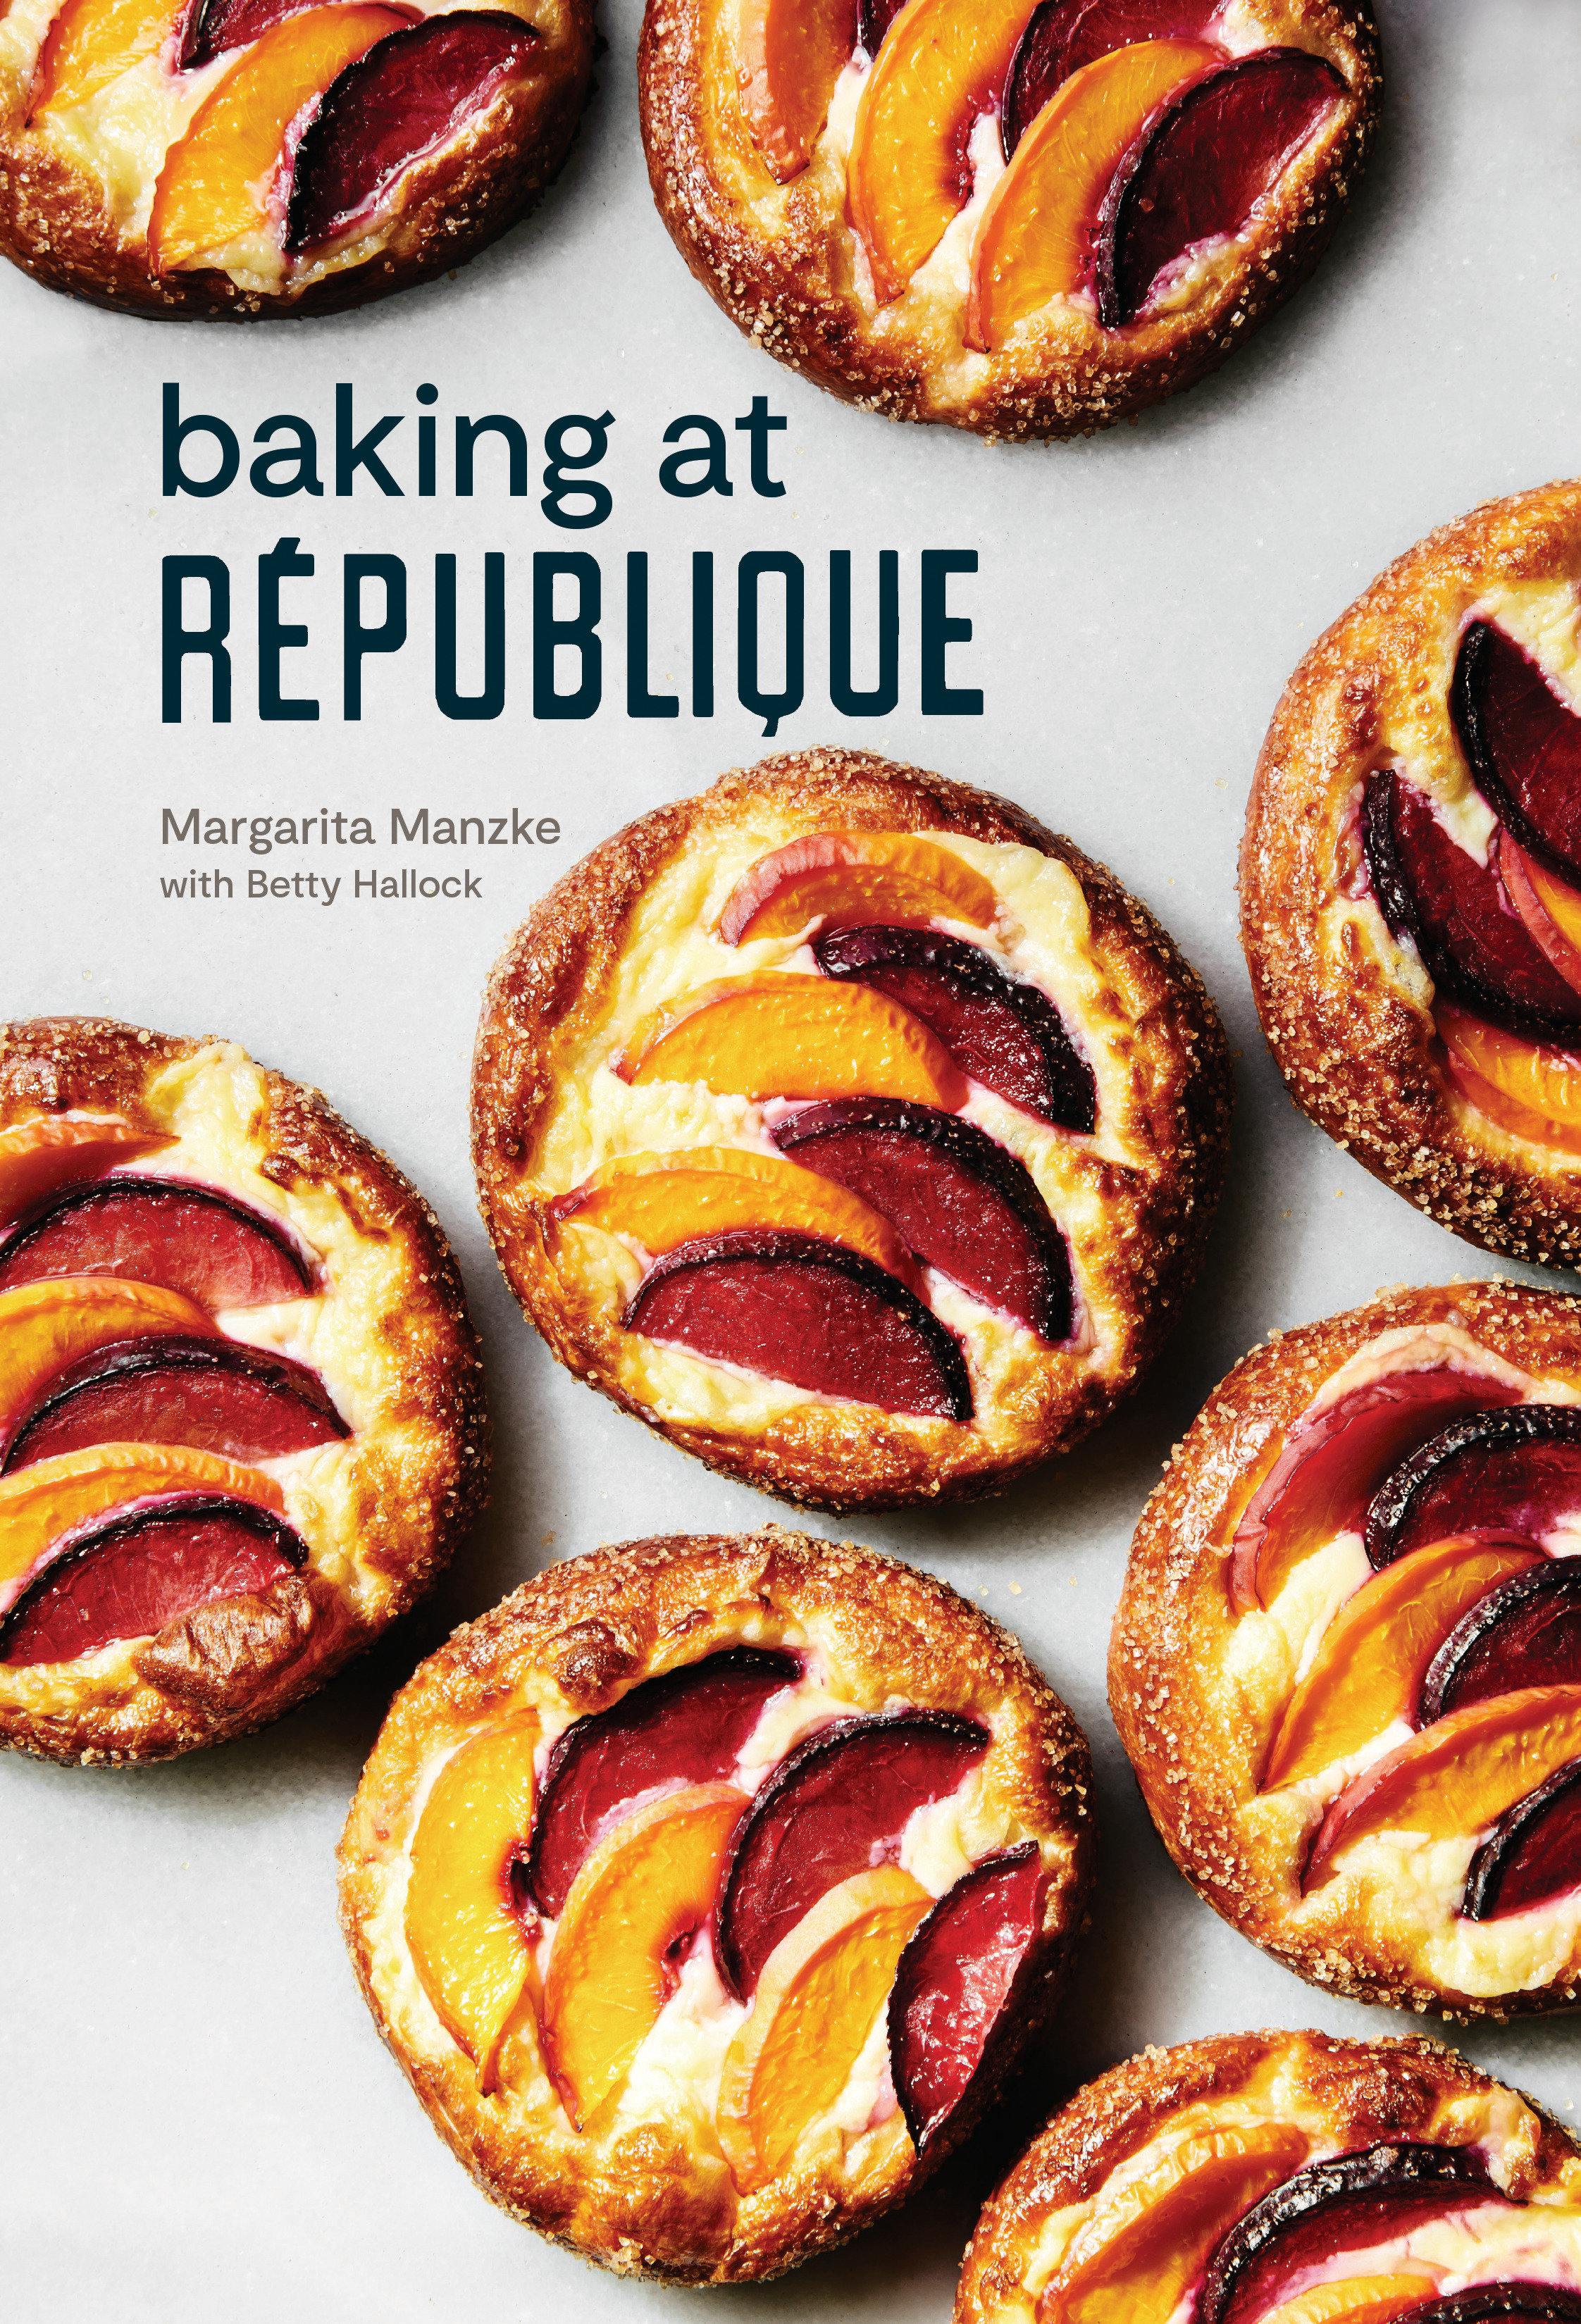 Baking at République Masterful Techniques and Recipes